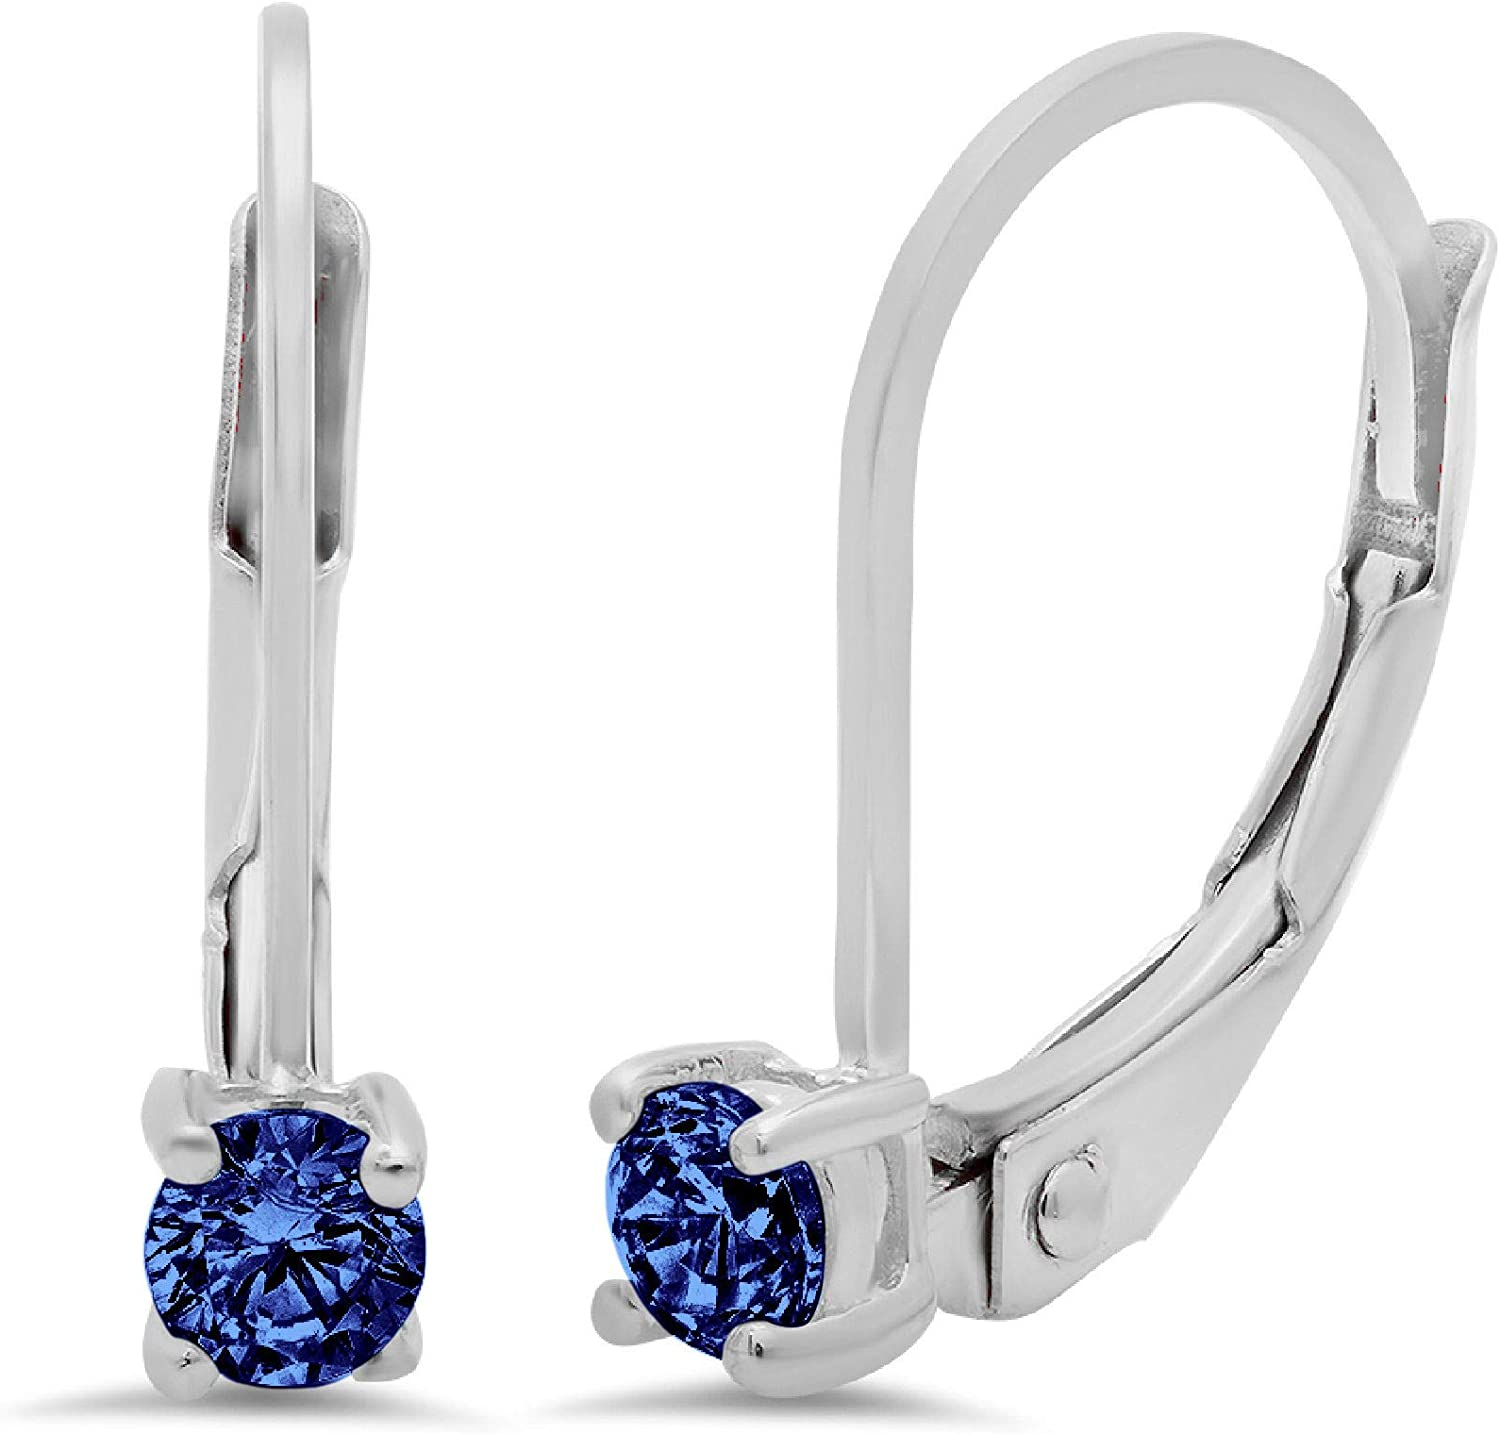 Clara Pucci 0.3 ct Brilliant Round Cut Solitaire Genuine Flawless Simulated Tanzanite Gemstone Pair of Lever back Drop Dangle Earrings Solid 18K White Gold